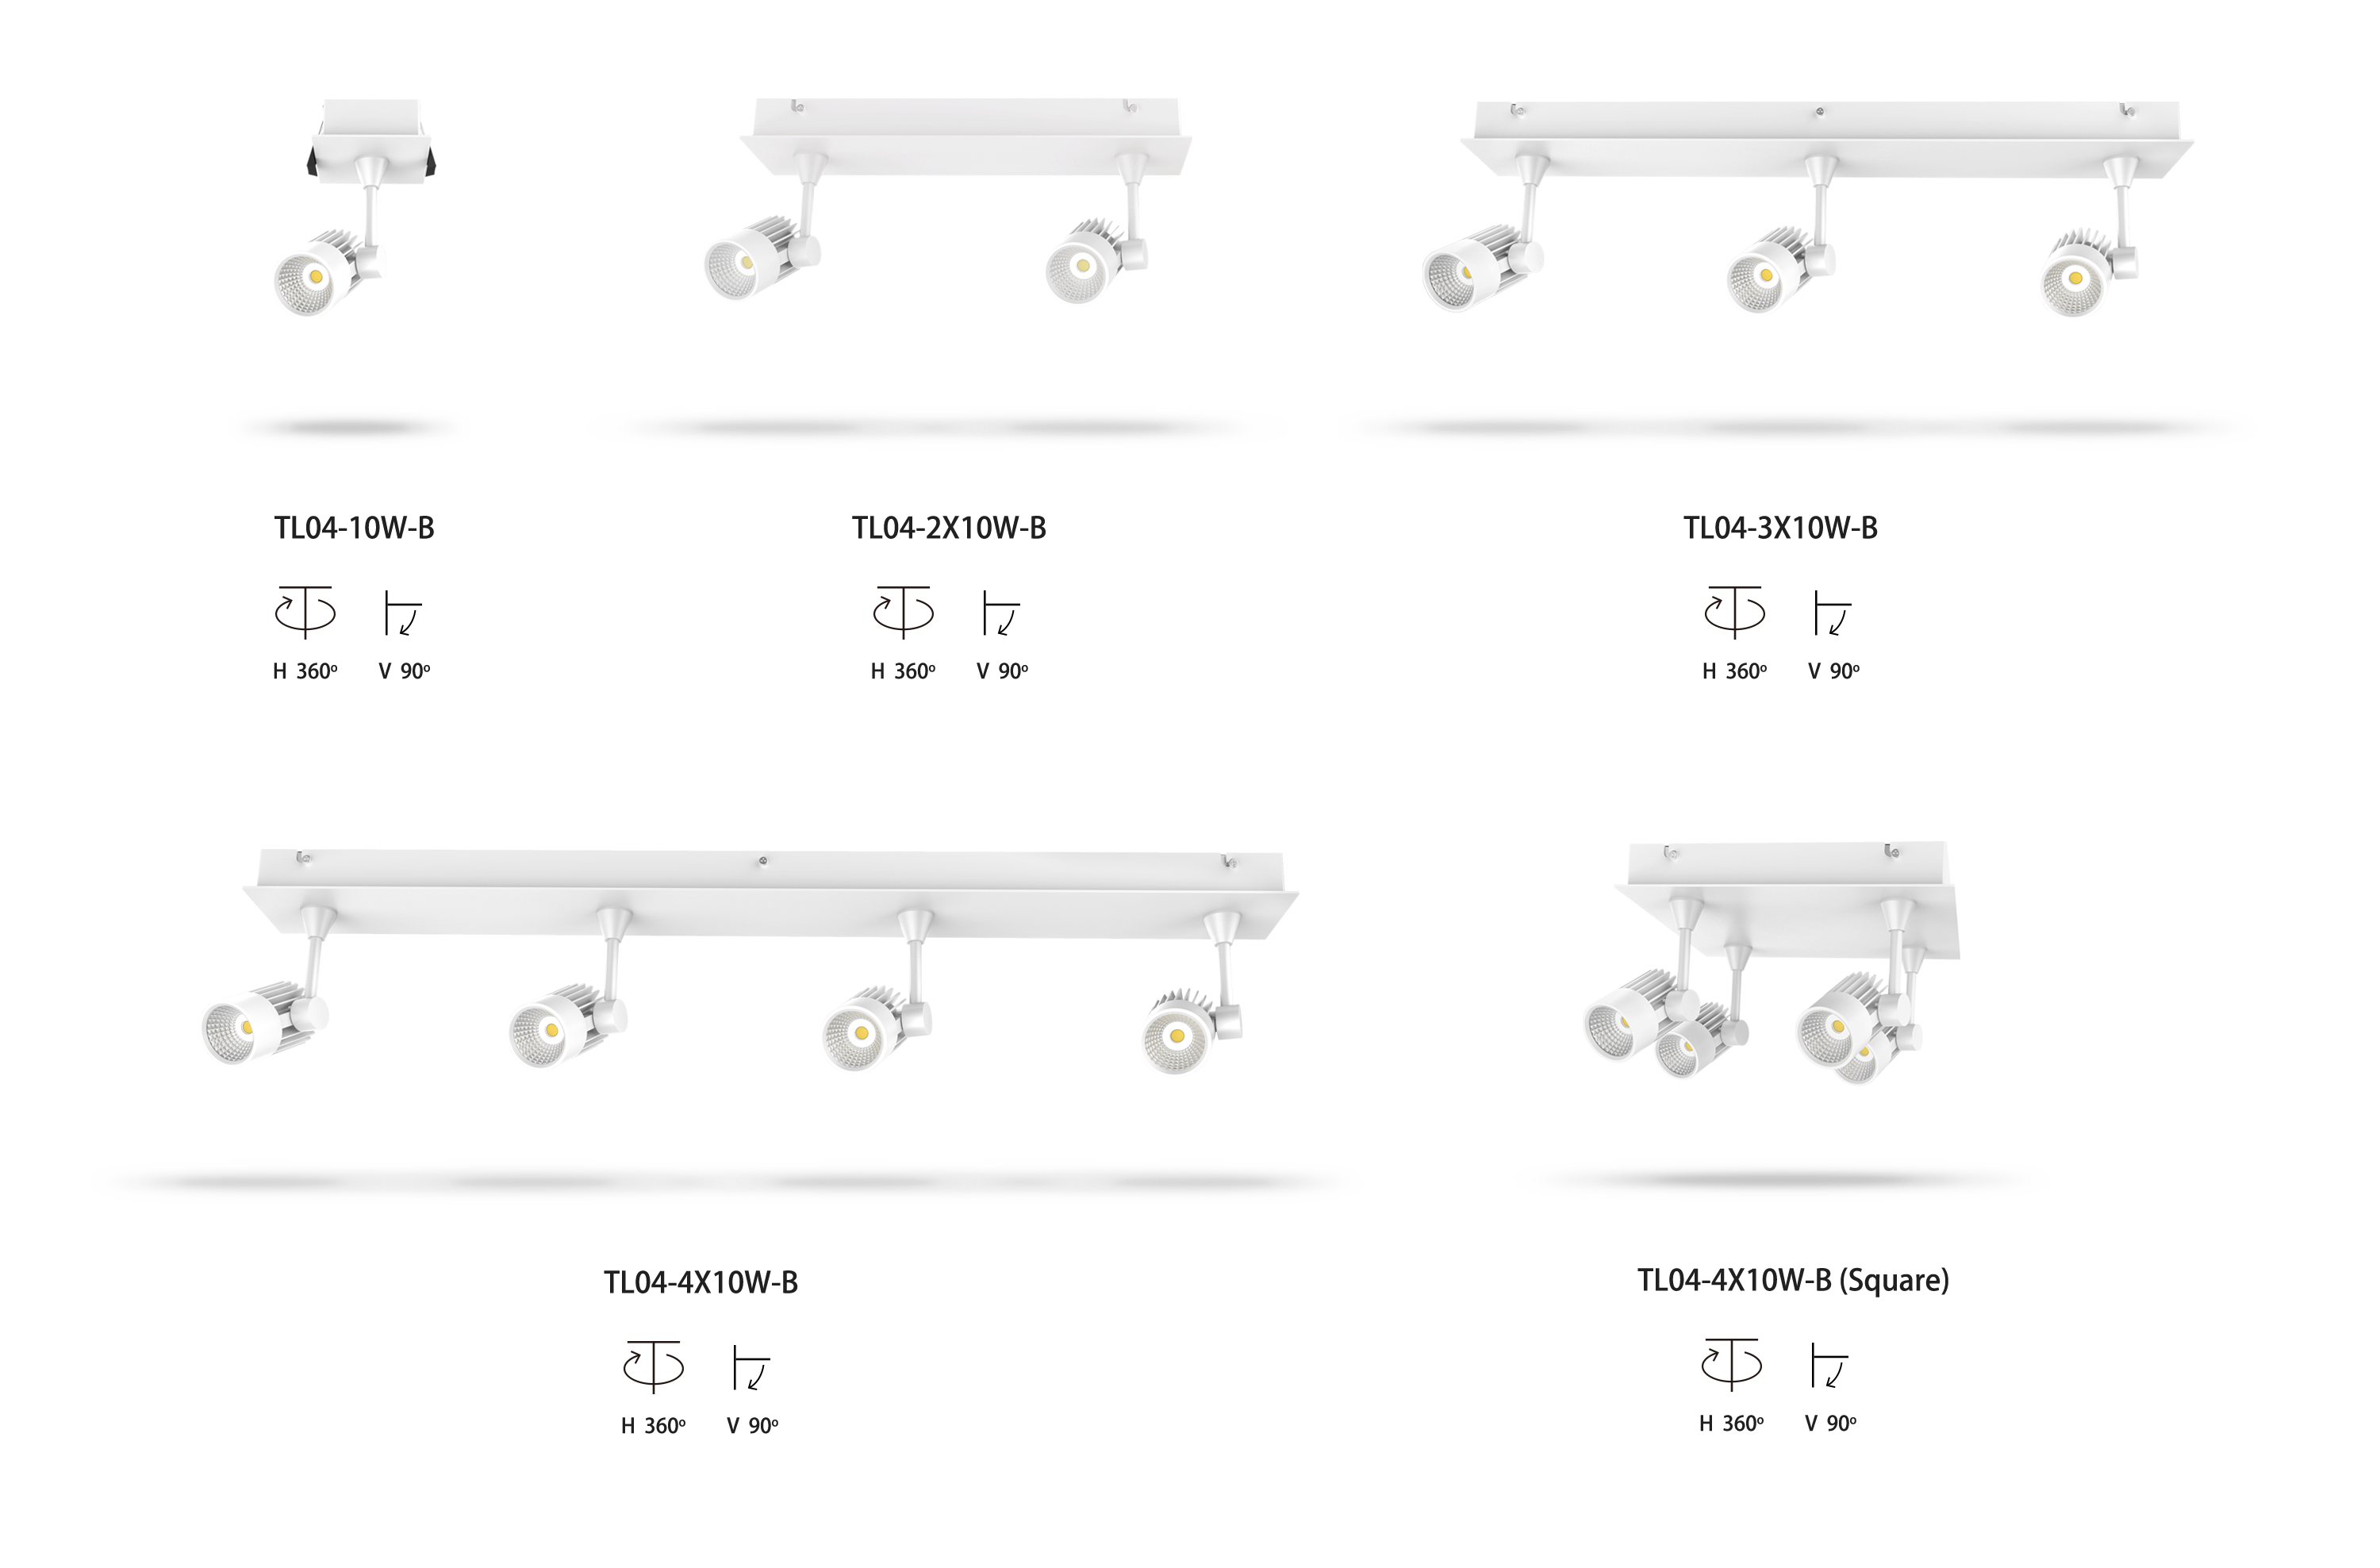 recessed LED track light kits